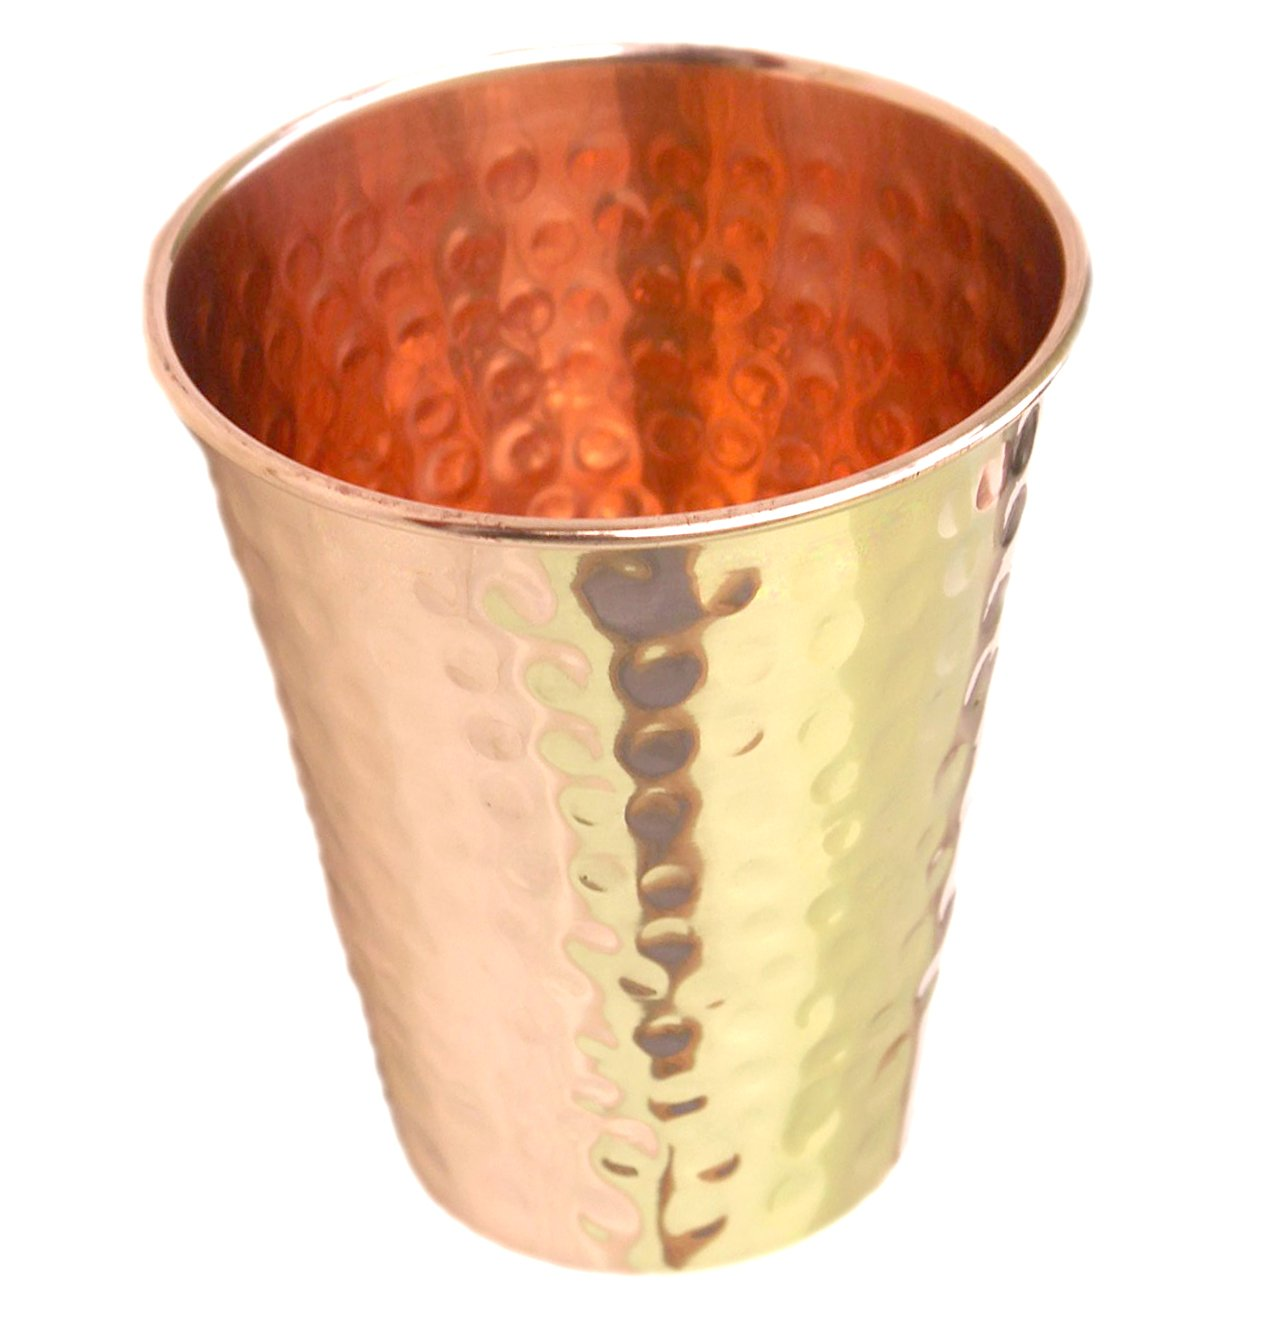 PARIJAT Handicraft Premium Quality Hammered Copper Tumbler - 100% Pure Hammered Copper Tumbler for Moscow Mules. PREMIUM-TUMBLER-86231